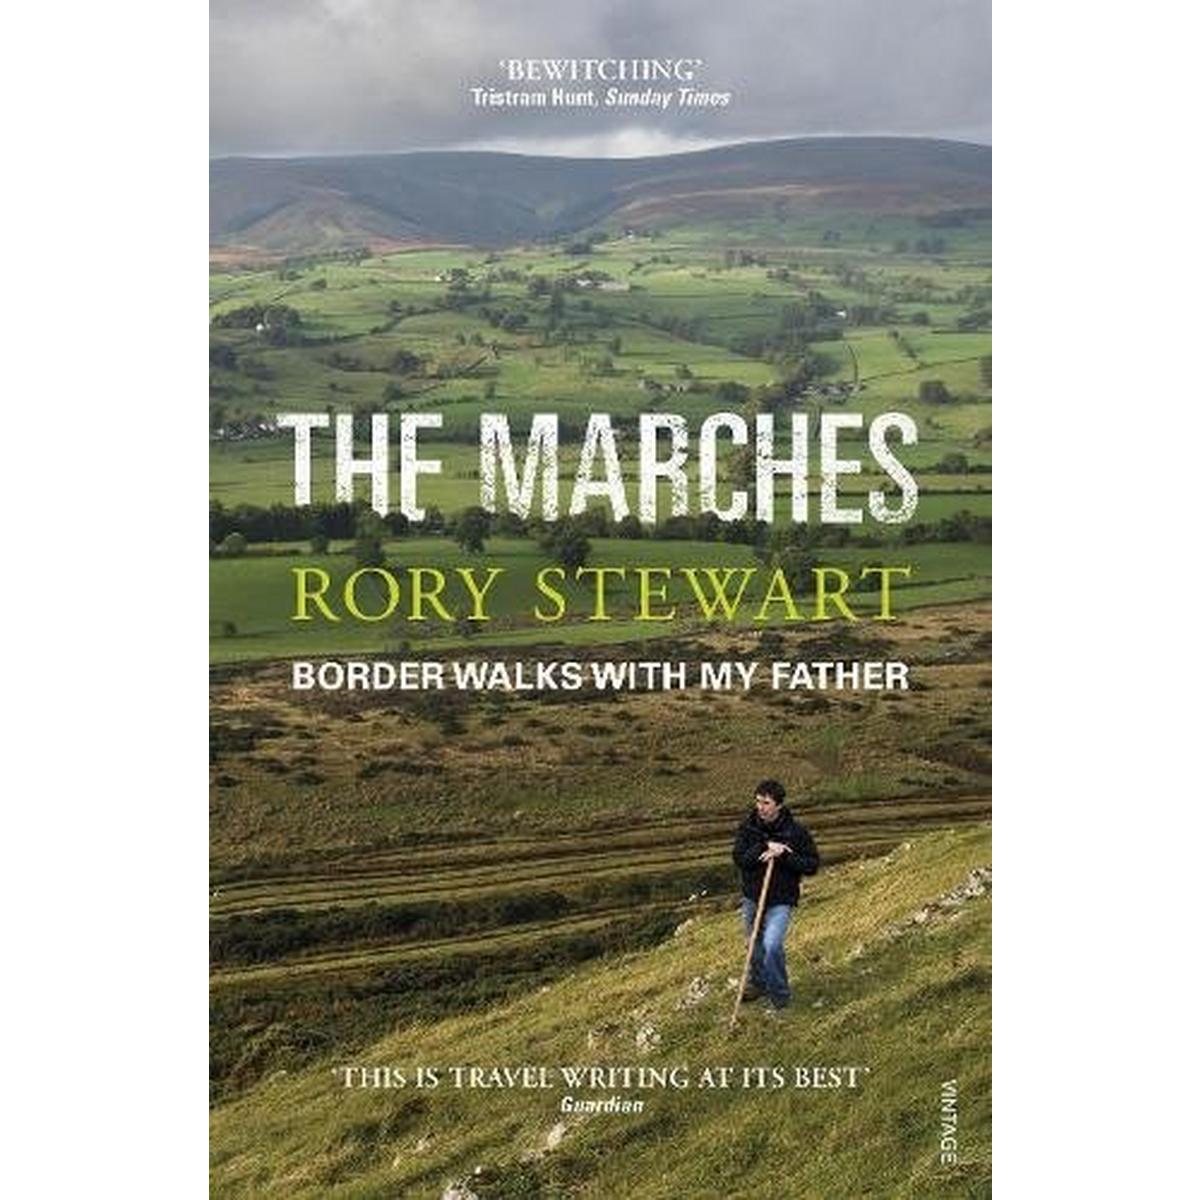 Miscellaneous Book: The Marches - Rory Stewart